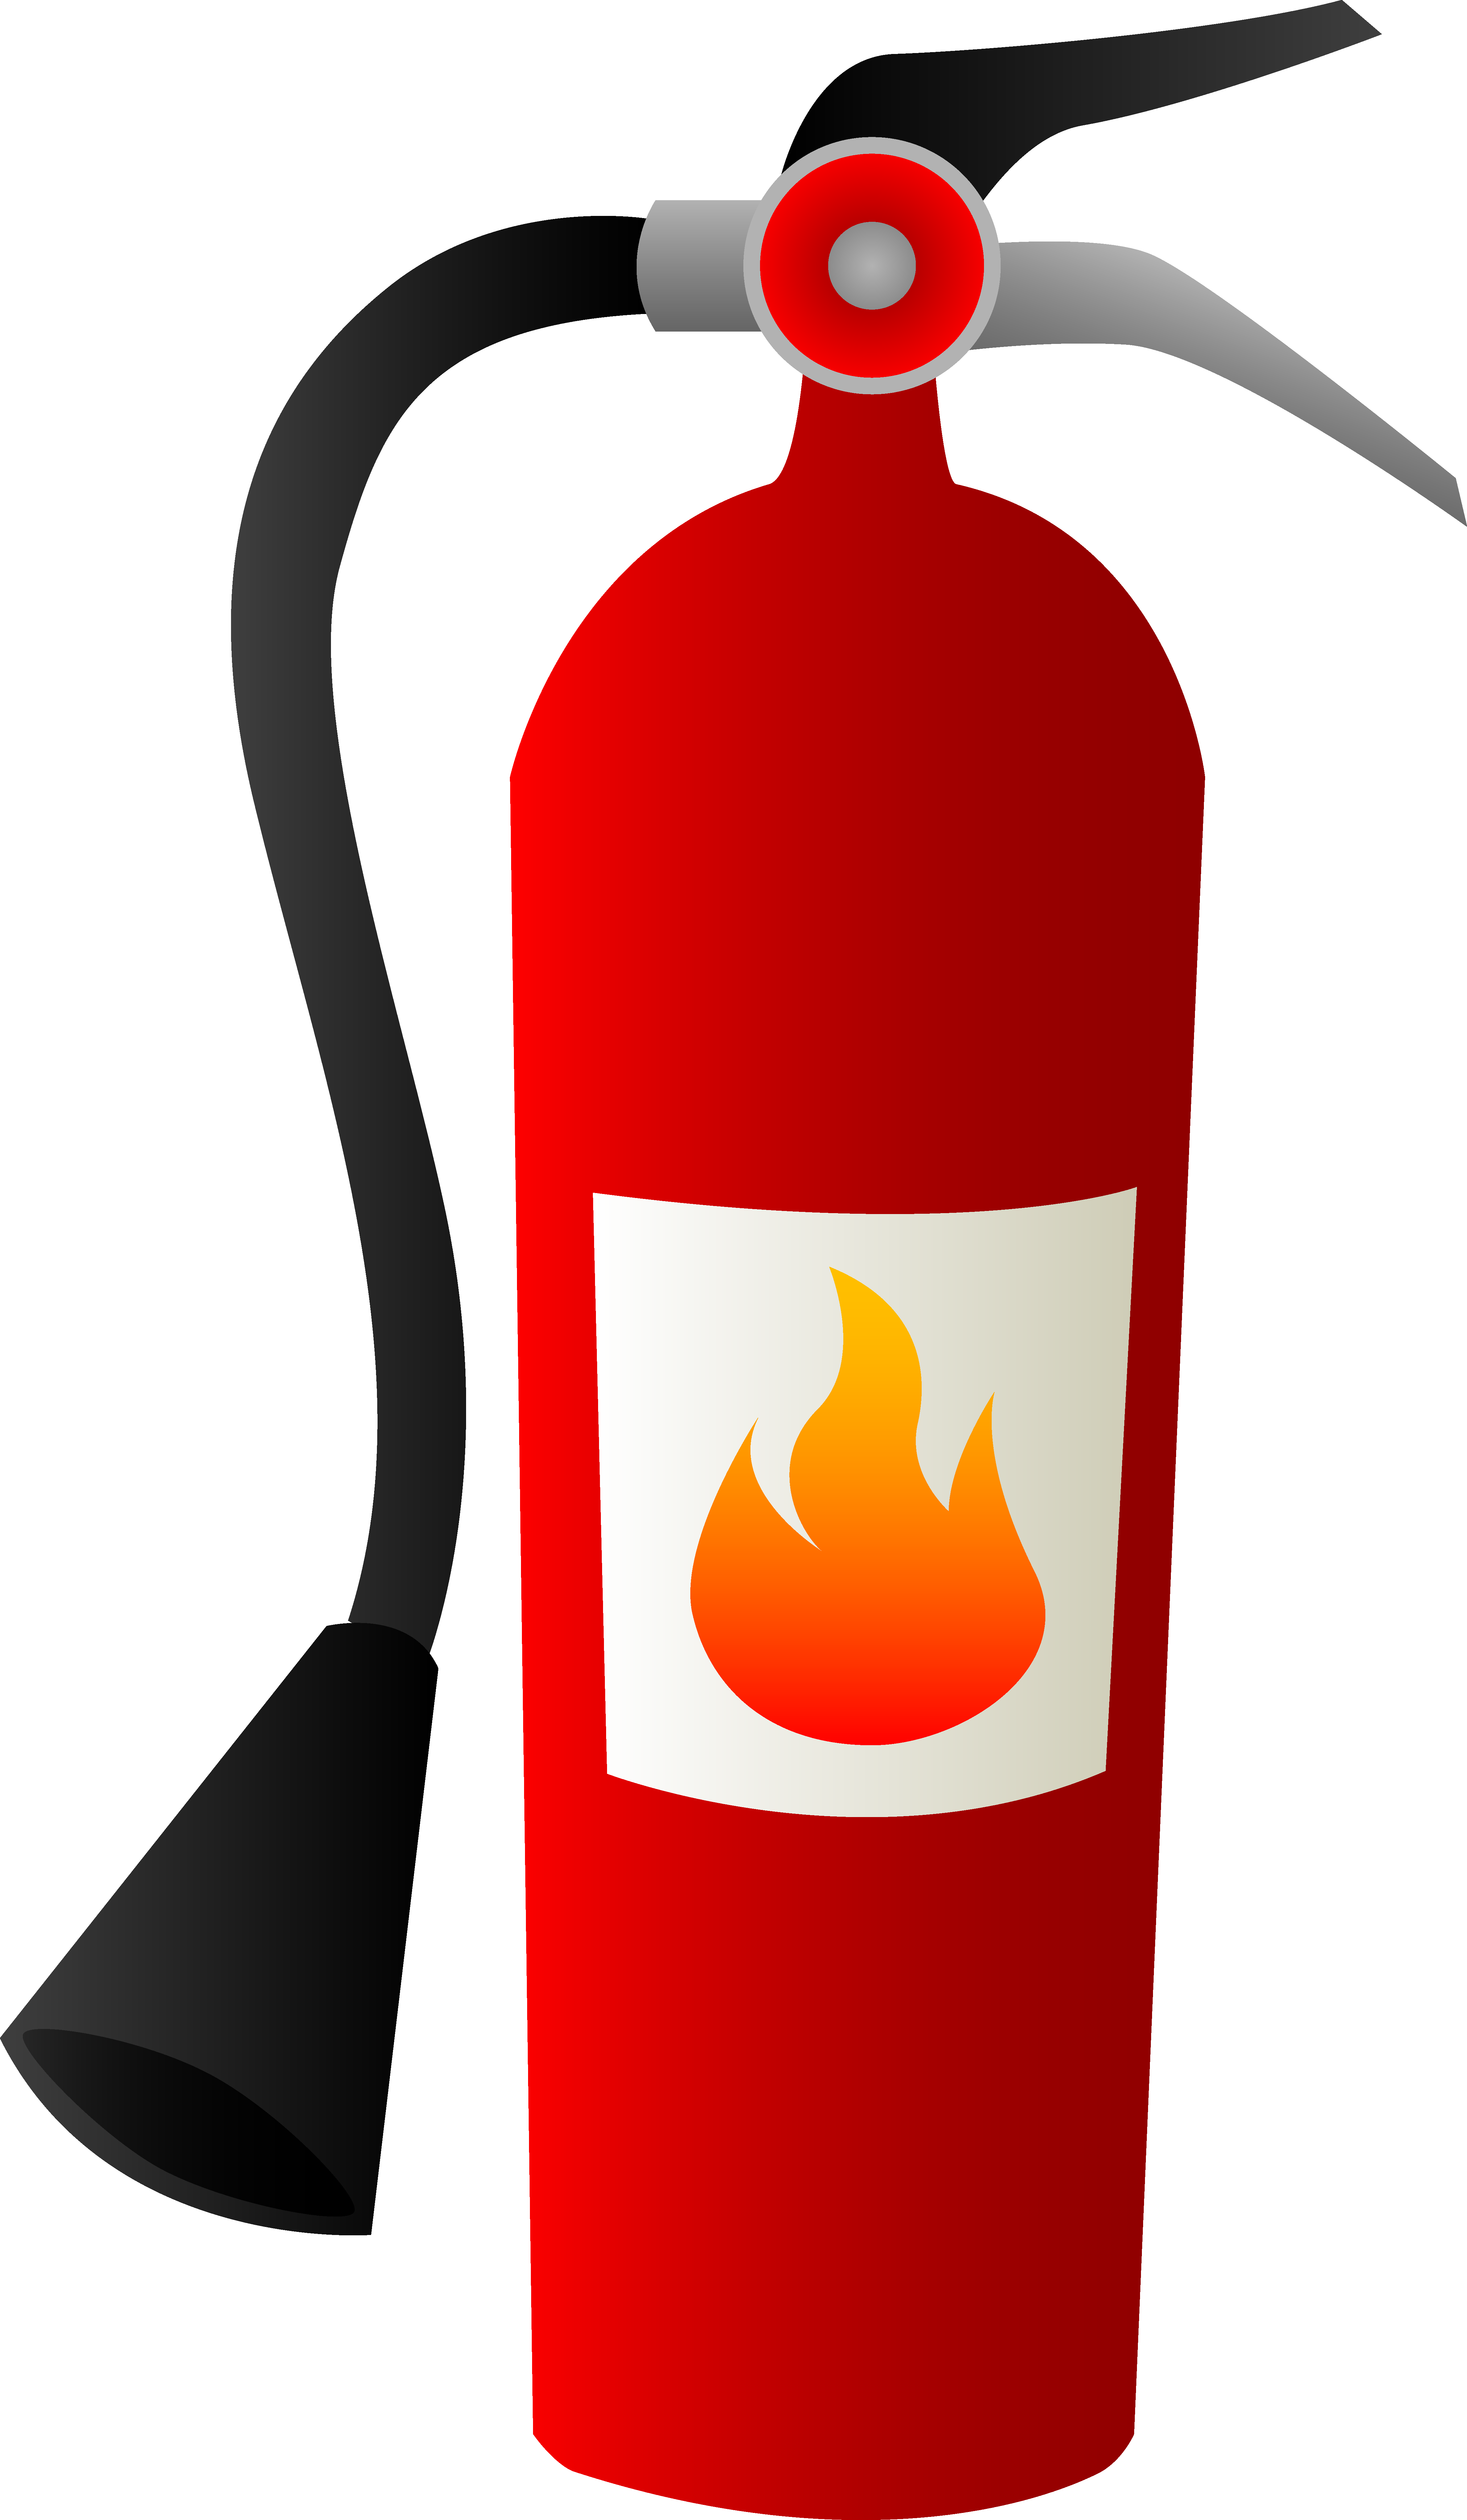 Extinguisher clipart safety item. Free printable fire signs